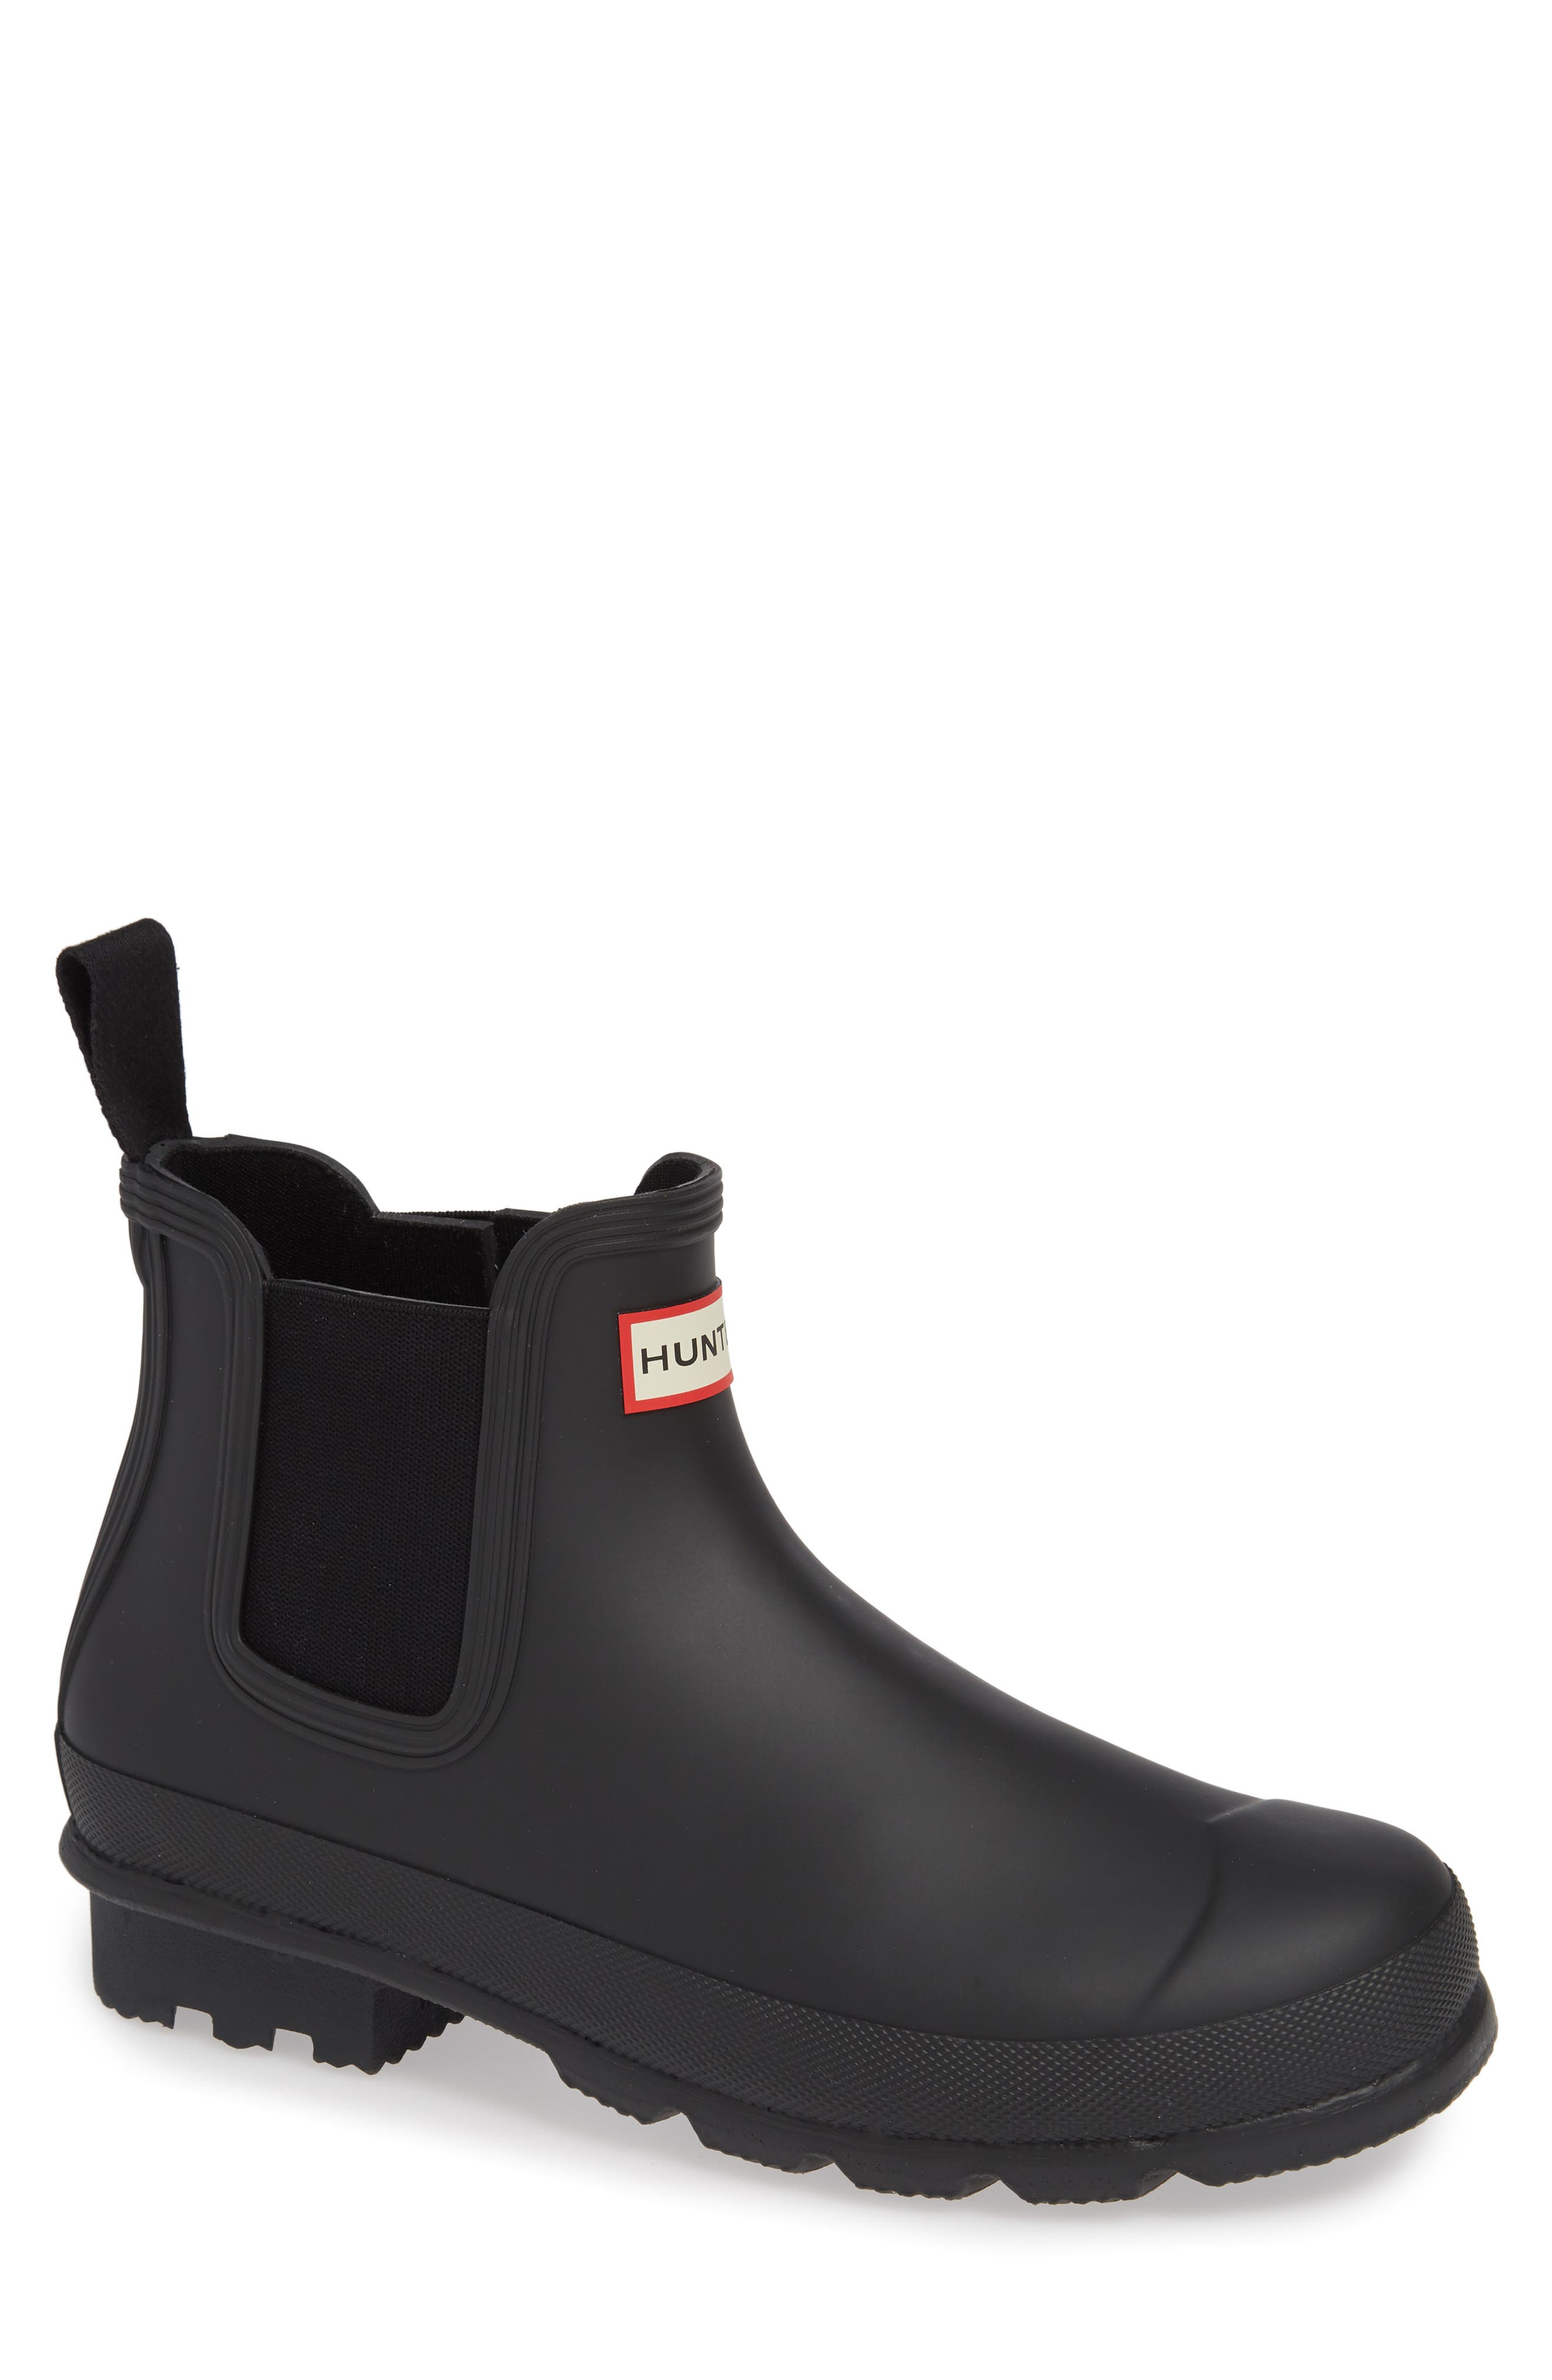 HUNTER 'Original' Waterproof Chelsea Rain Boot, Main, color, 002